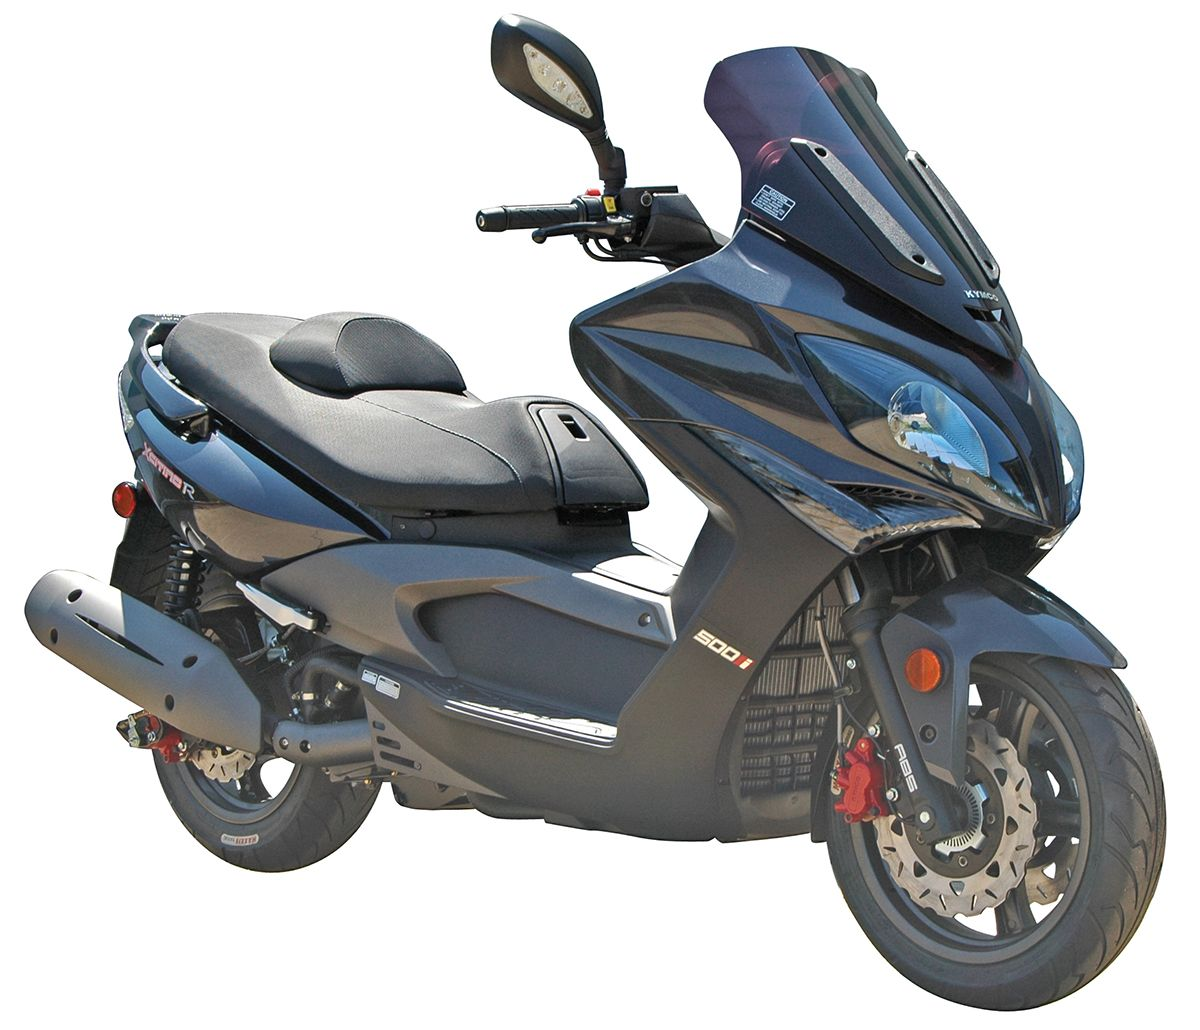 2016 Kymco Xciting 500 Ri ABS in Albuquerque, New Mexico